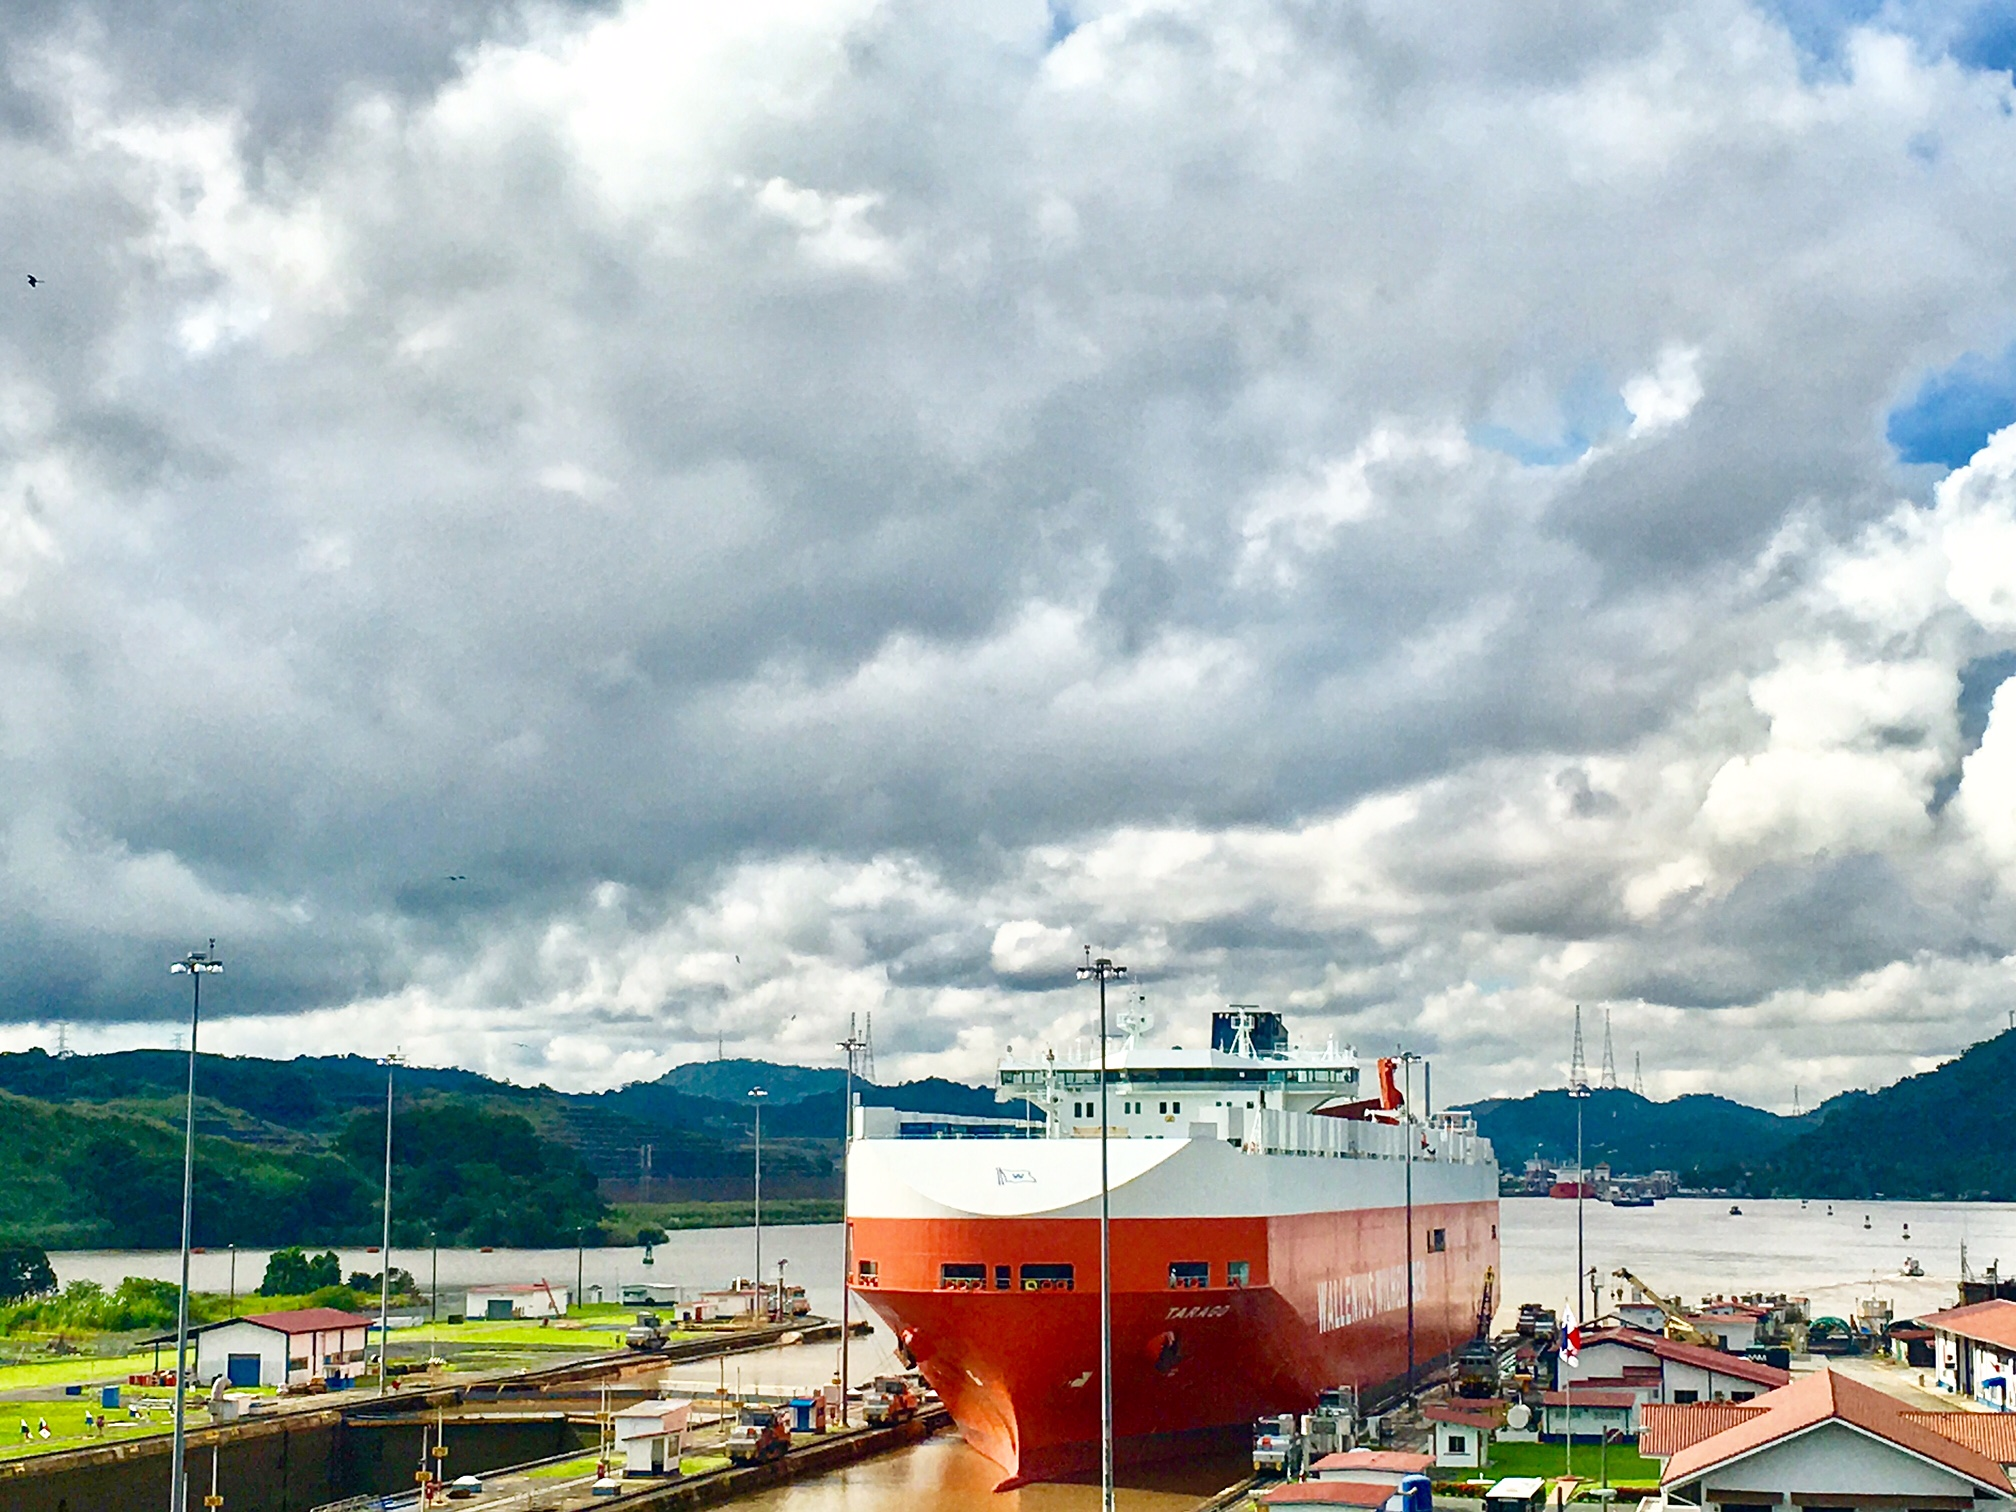 Views from the Panama Canal